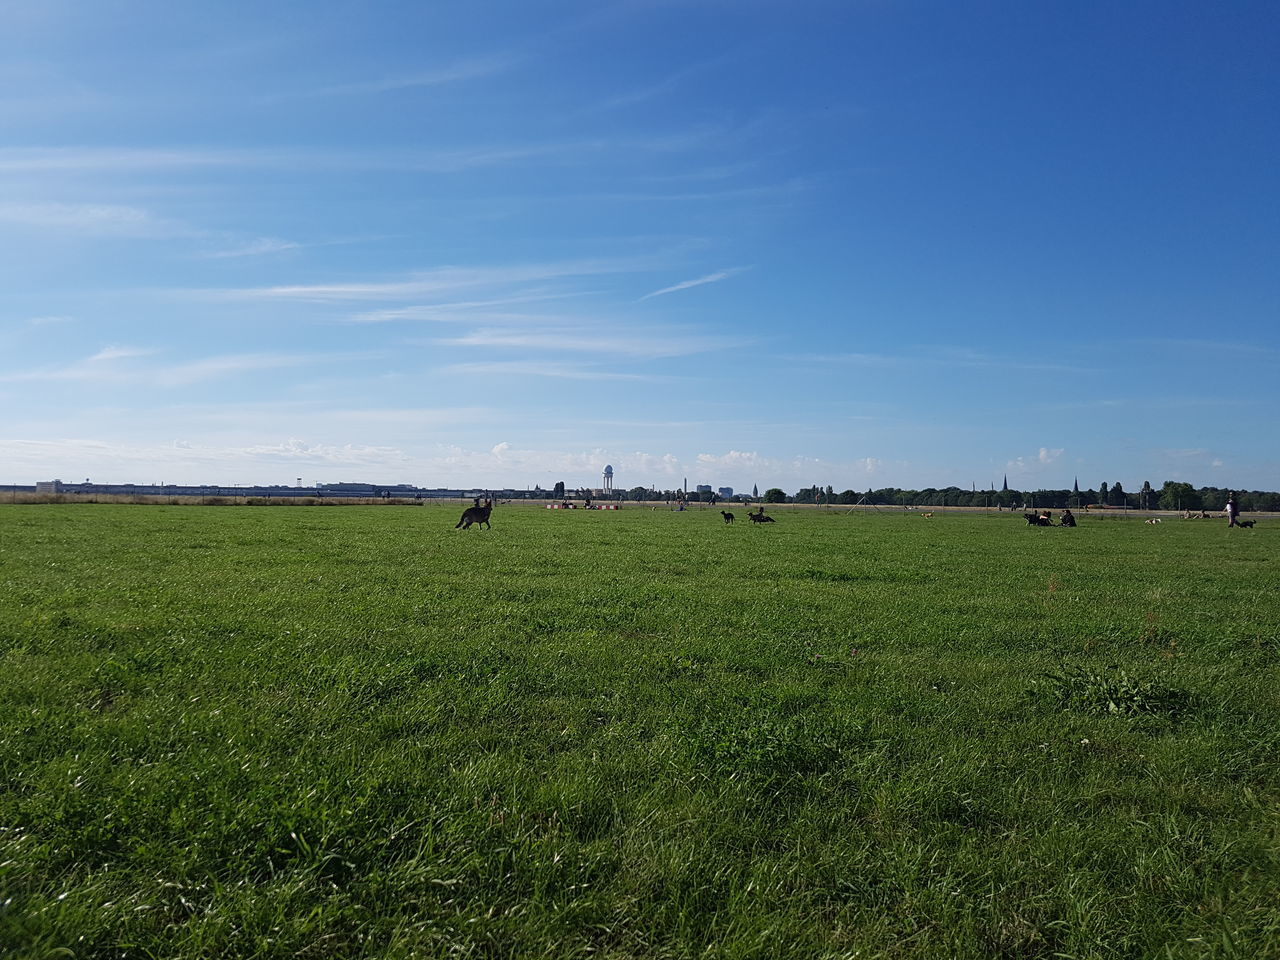 Beautiful day in Tempelhof airfield. Abundance Agriculture Beauty In Nature Day Dog Park Field Growth Landscape Large Group Of People Nature Outdoors People Rural Scene Scenics Sky Tempelhofer Feld Water